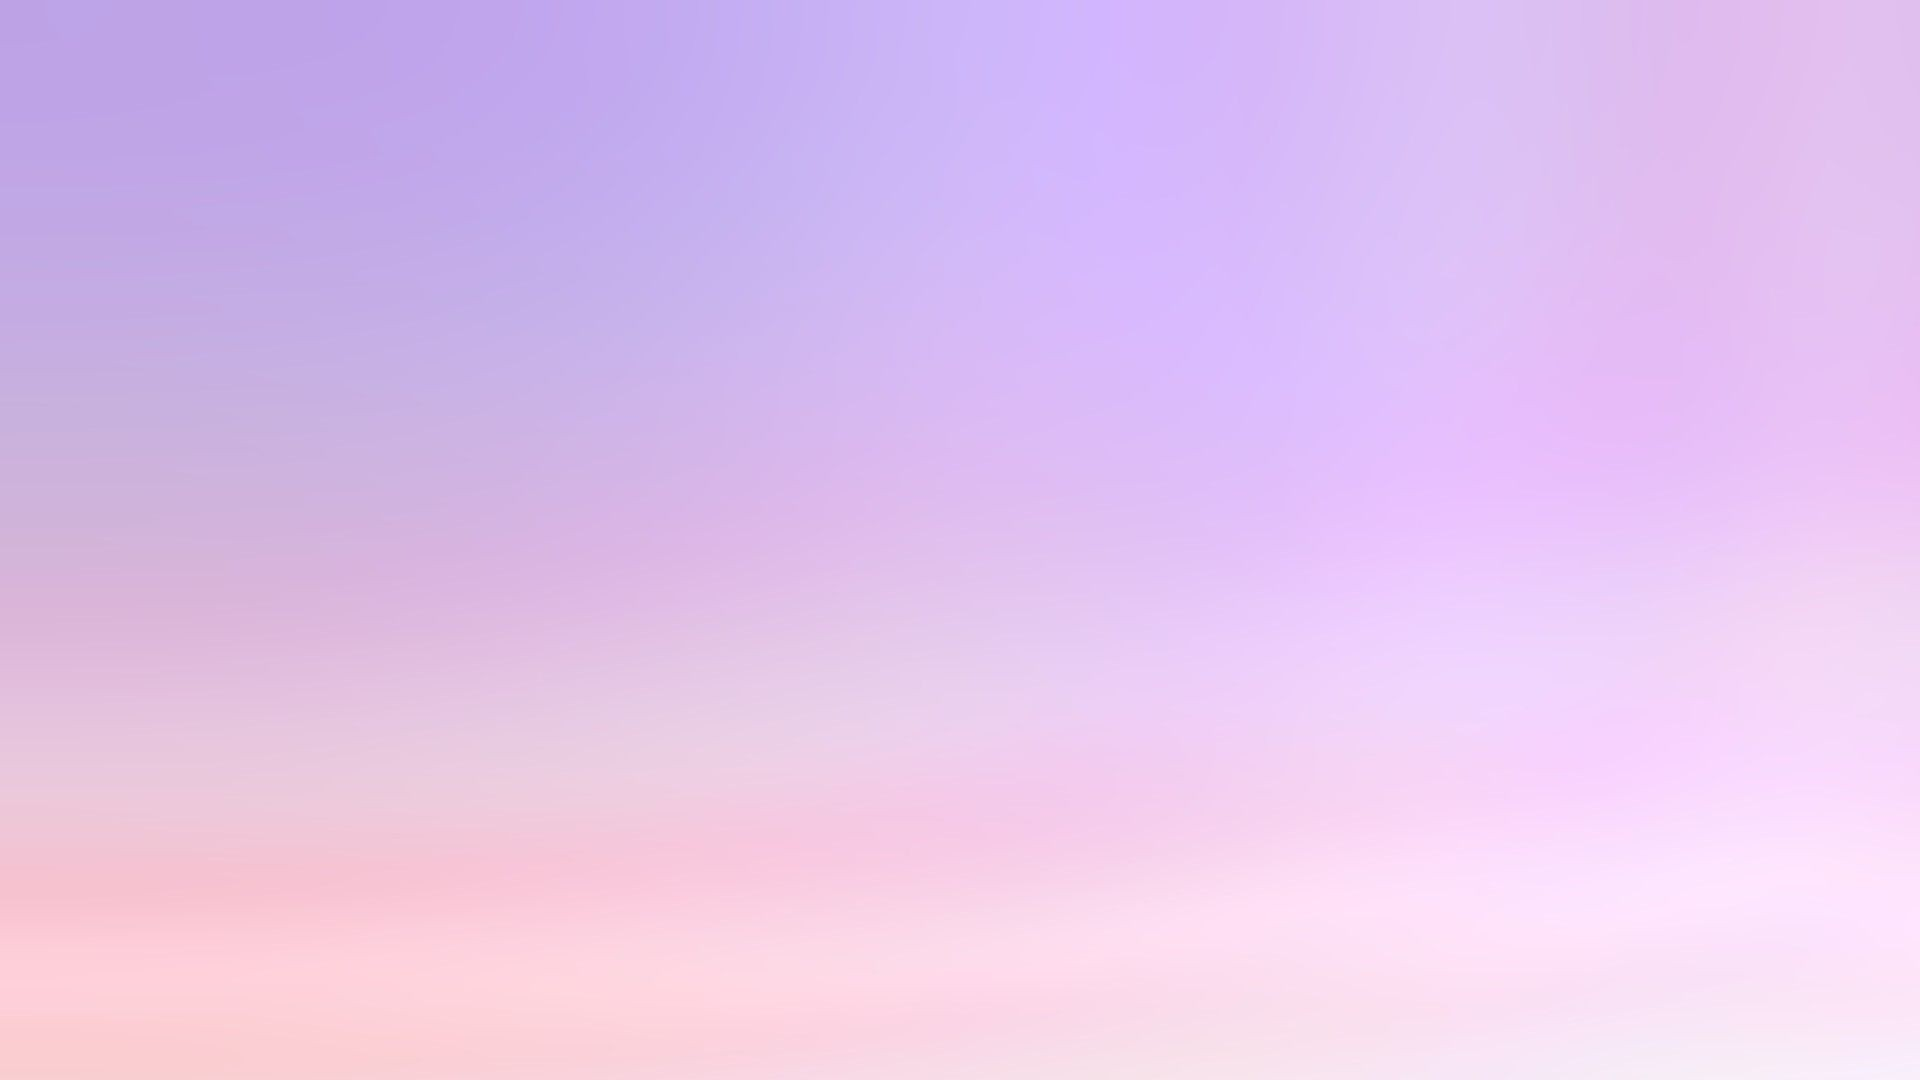 Light Purple Background Hd: Gradient Background Tumblr ·① Download Free Amazing Full